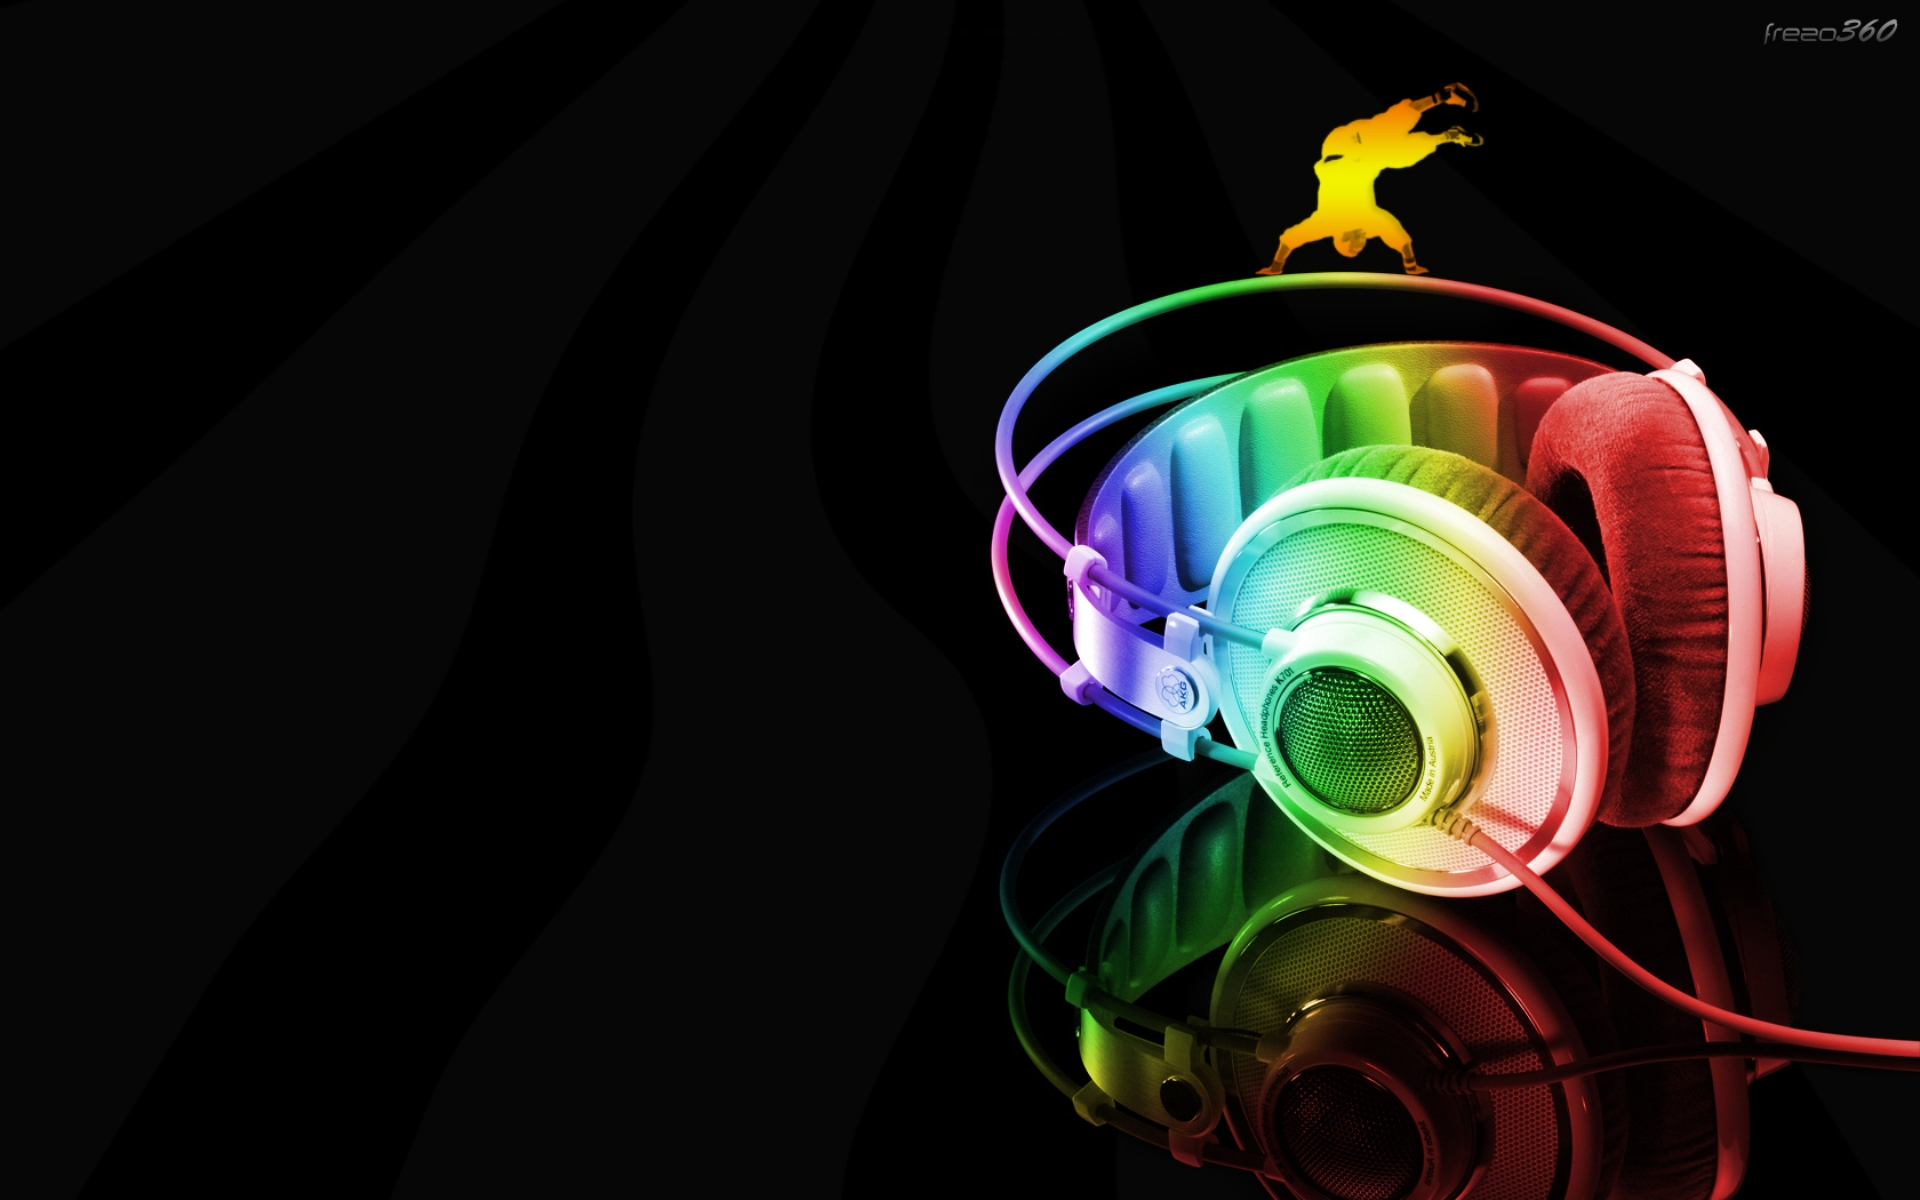 Neon Headphone Cool Music Wallpaper Wallpaper WallpaperLepi 1920x1200